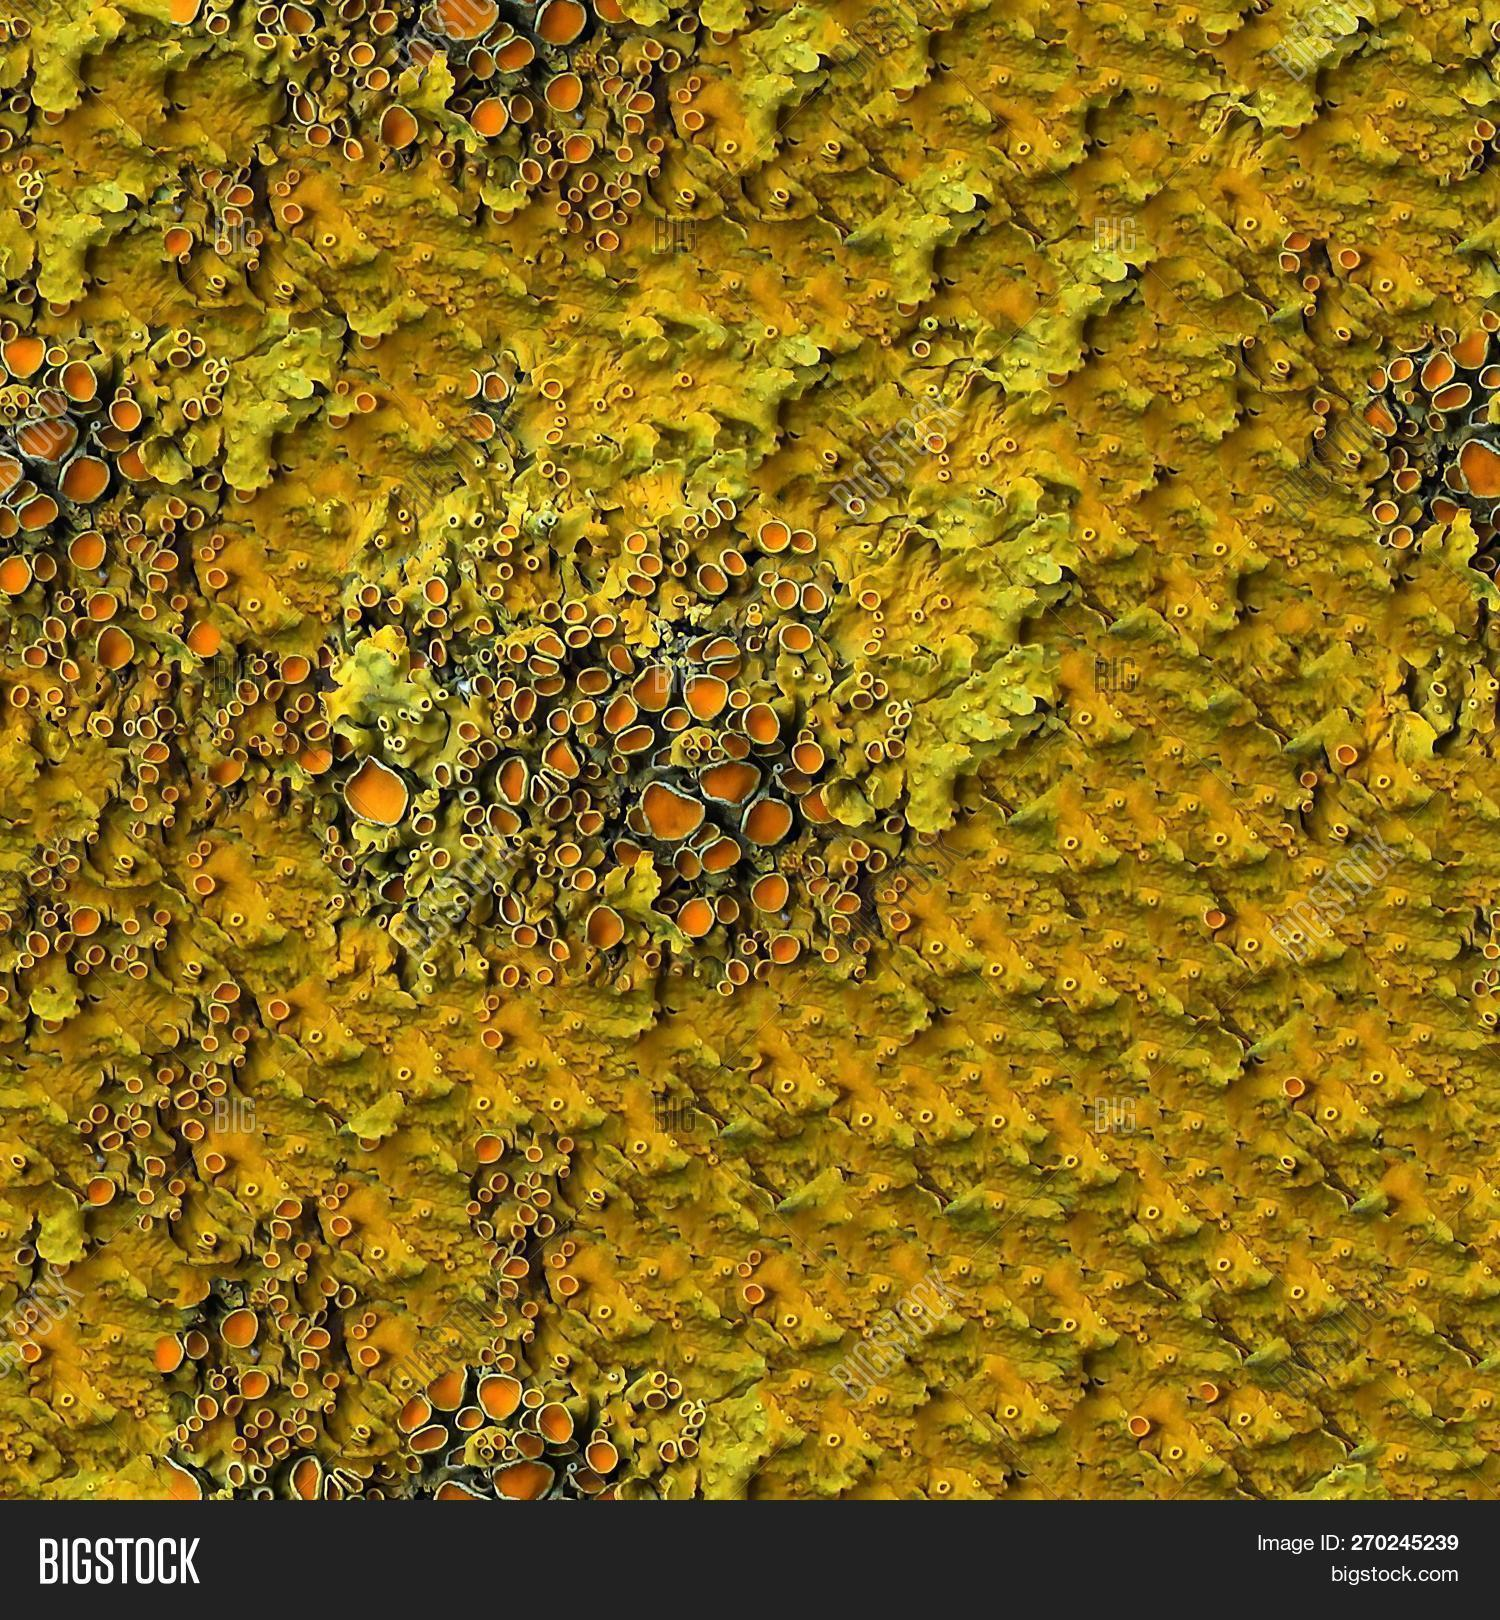 Seamless Abstract Image Photo Free Trial Bigstock